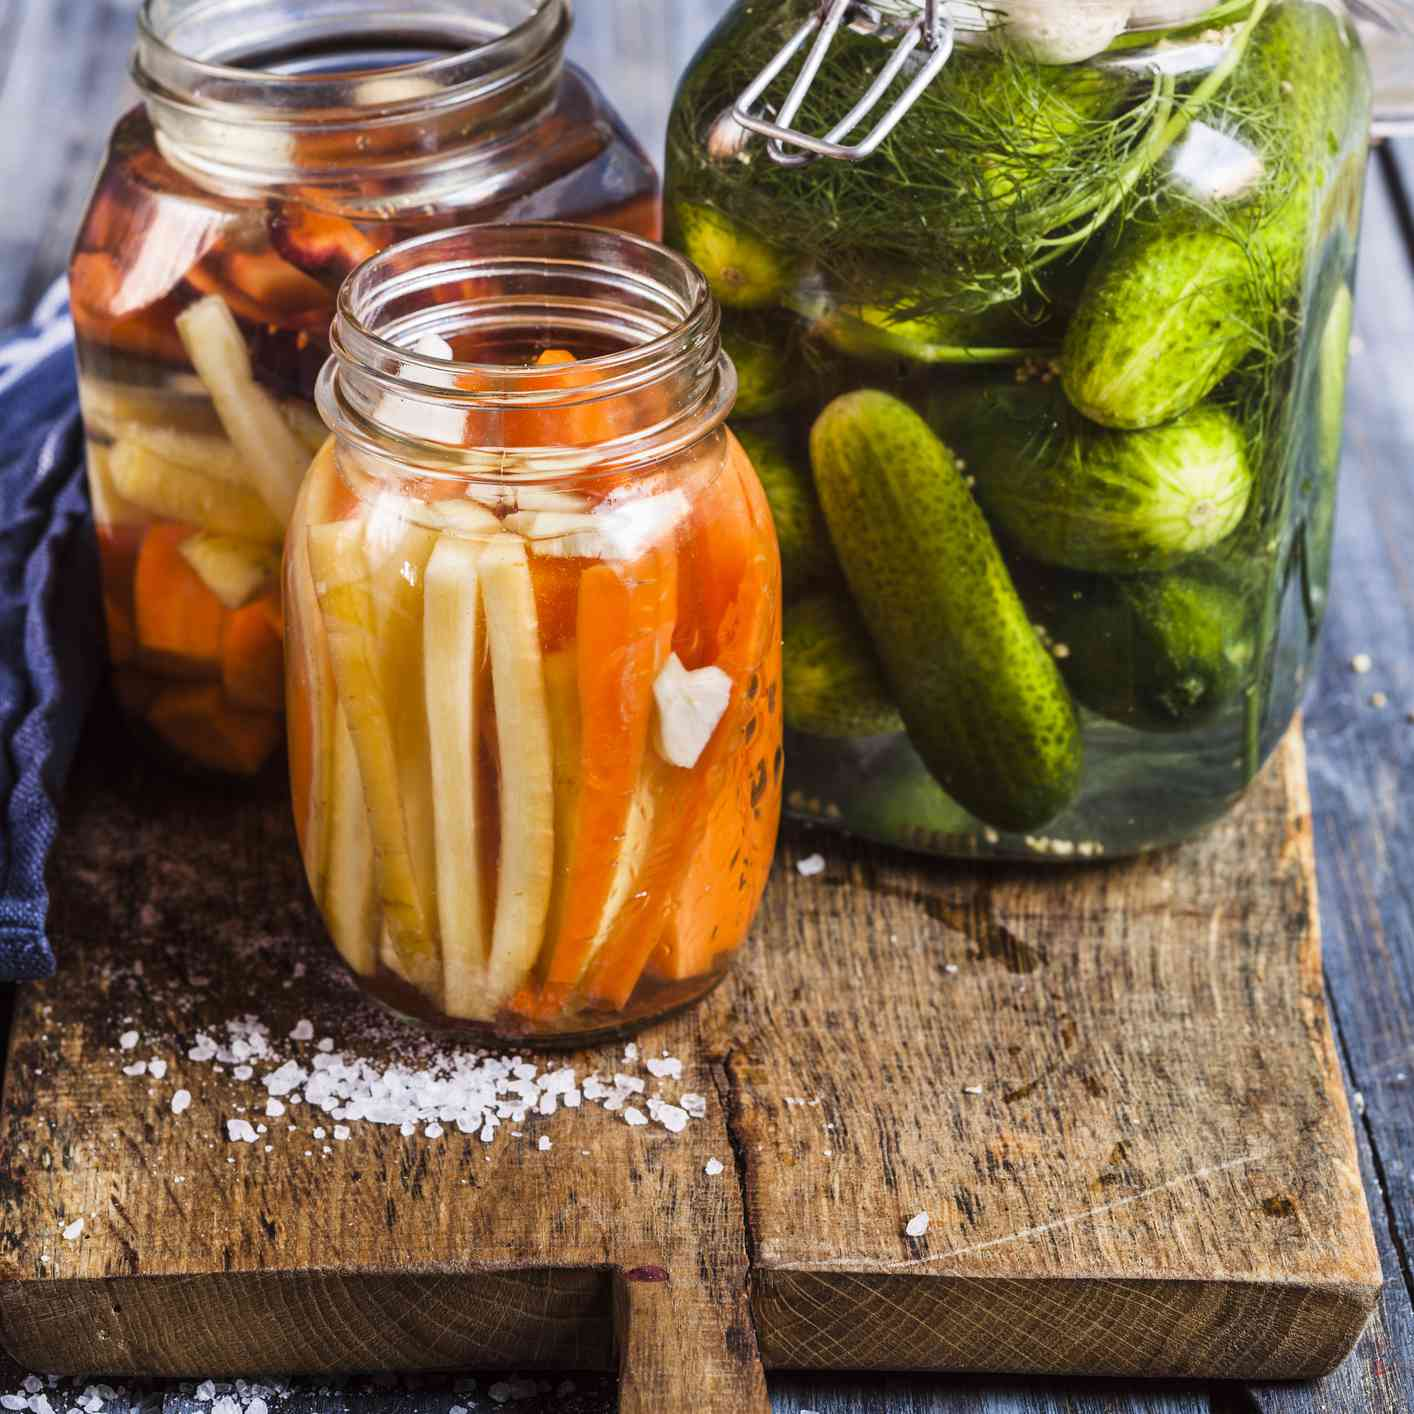 Fermented vegetables in glass jars on a wooden cutting board